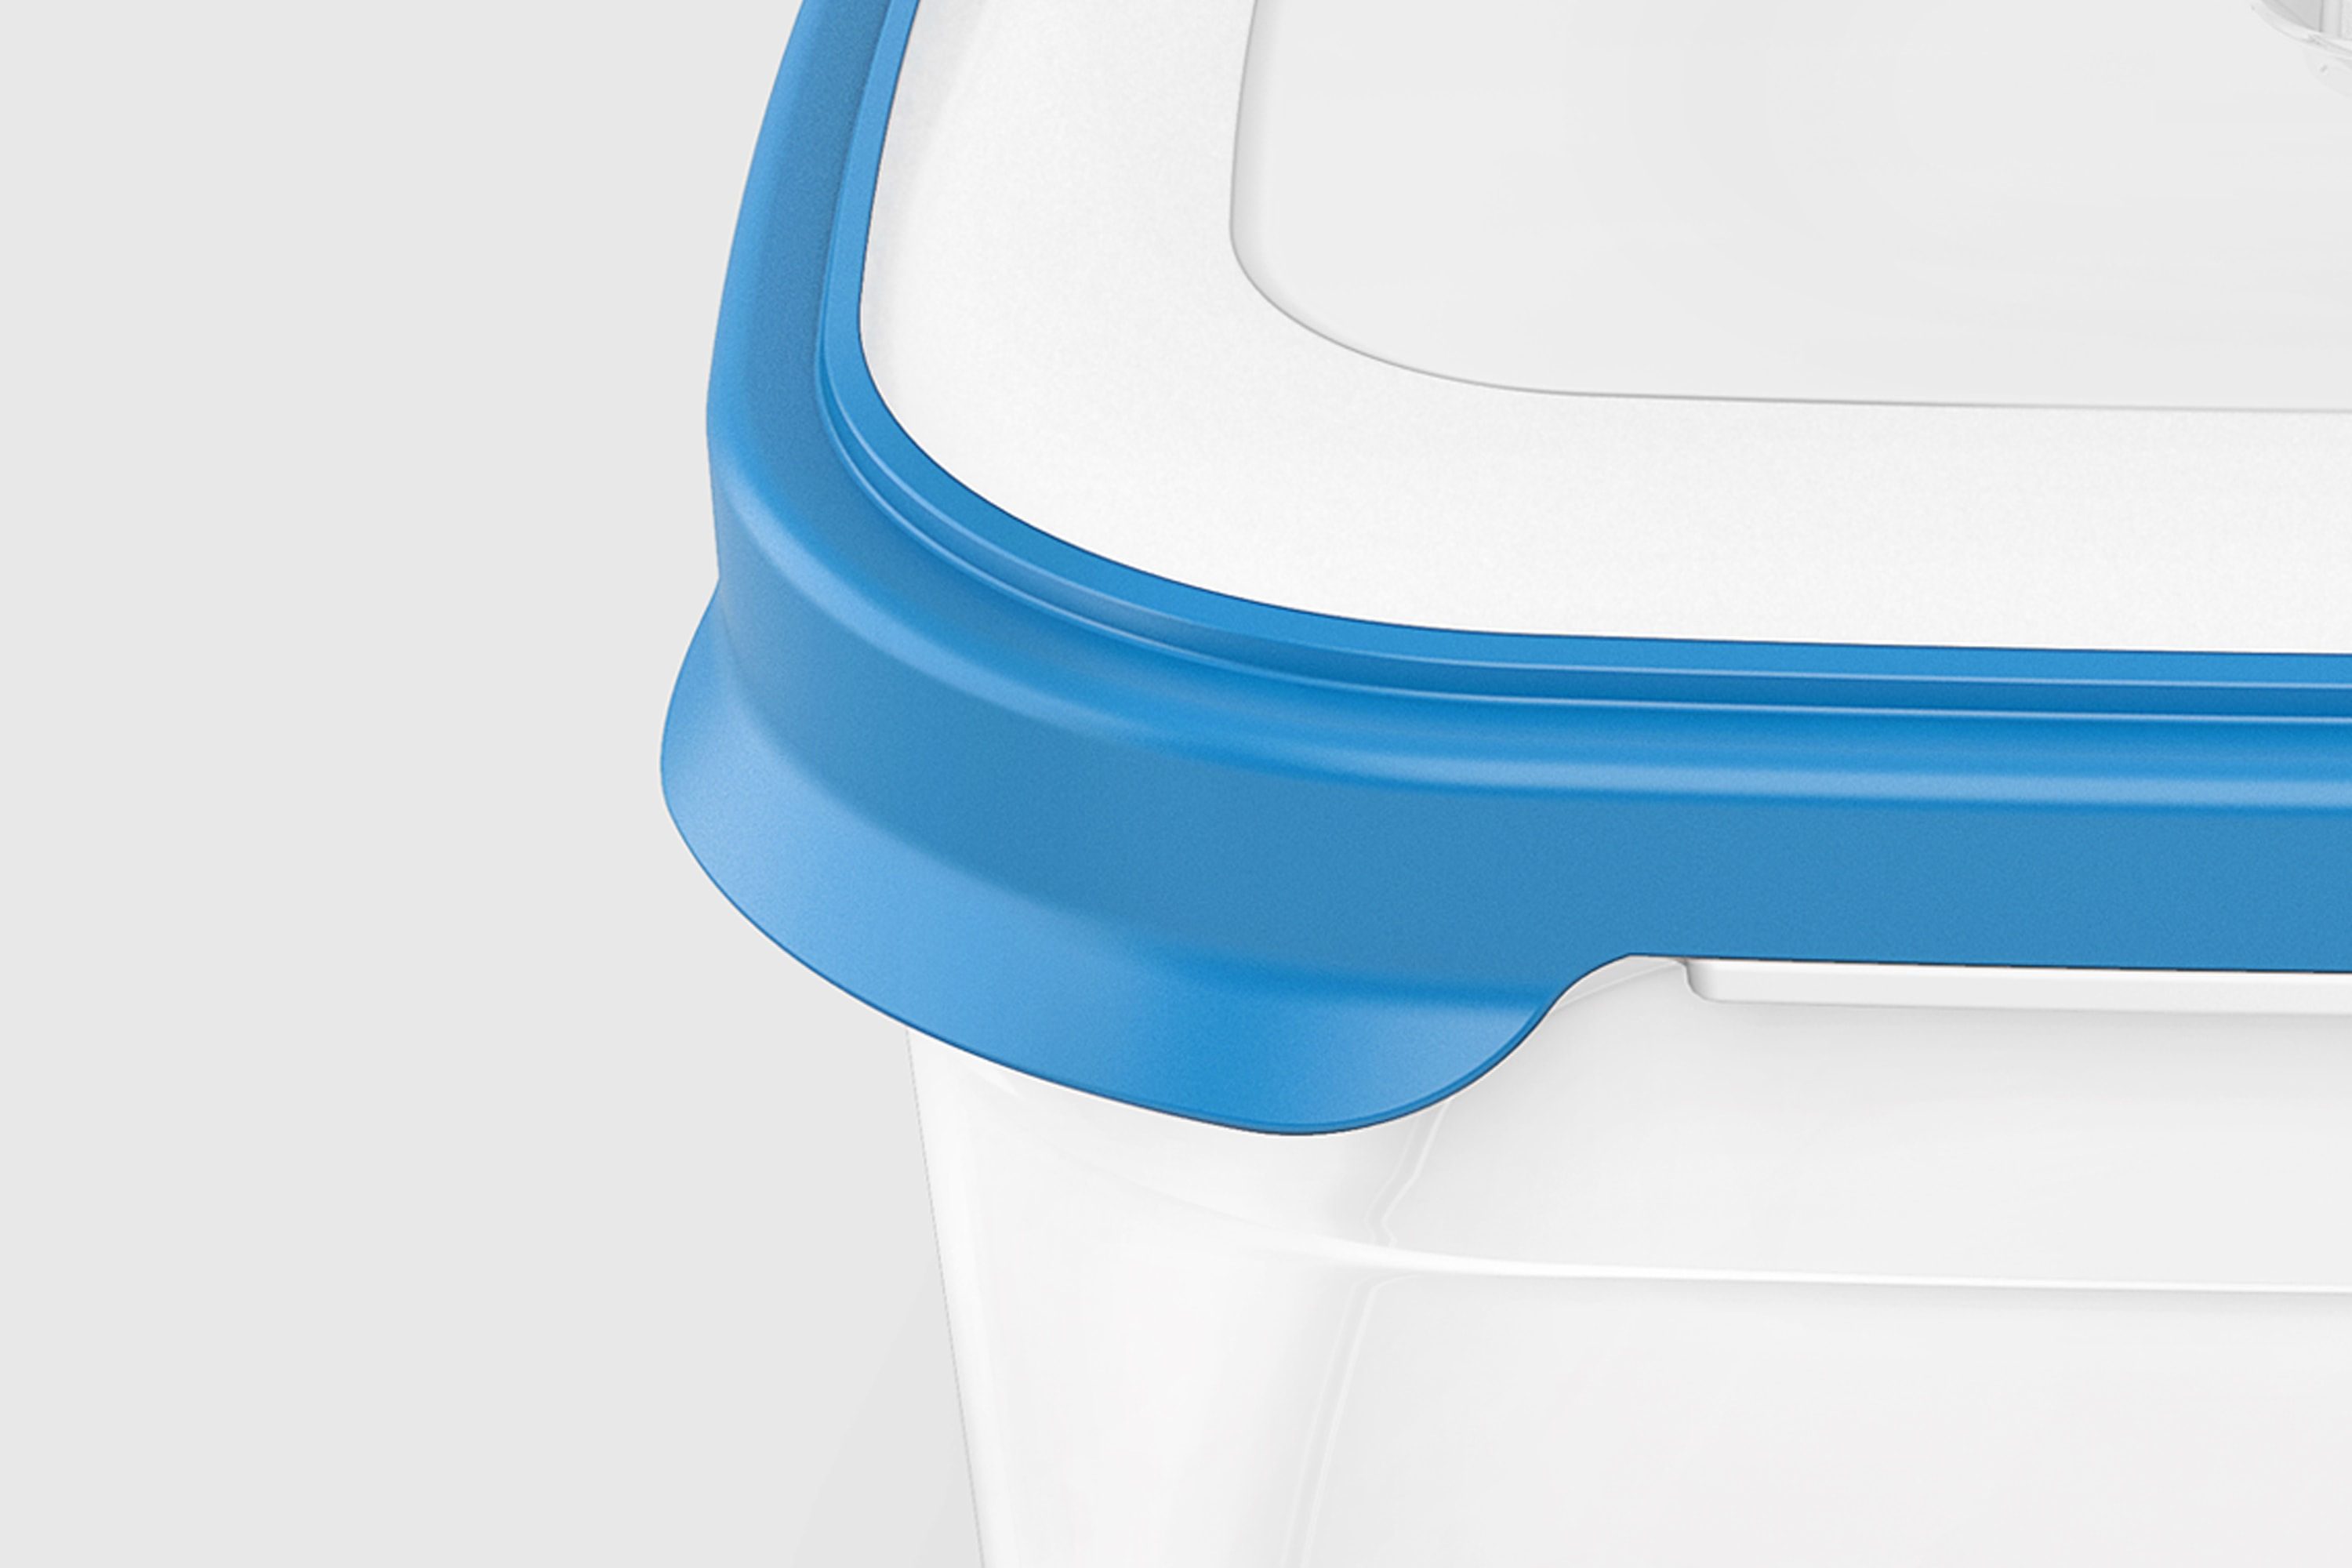 Front view of a corner of the JosephJoseph box with a blue lid